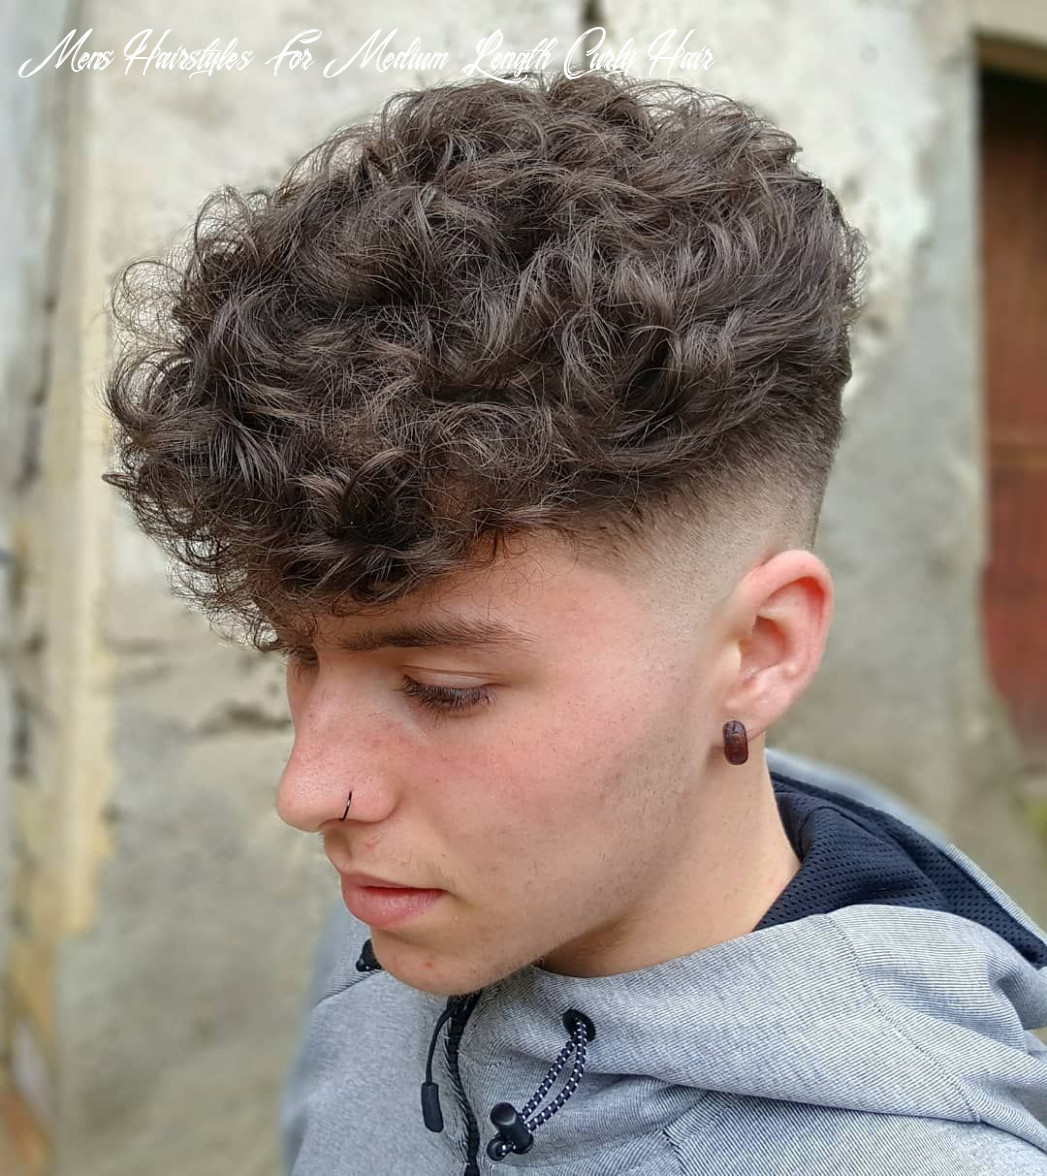 Pin on mens hairstyles mens hairstyles for medium length curly hair